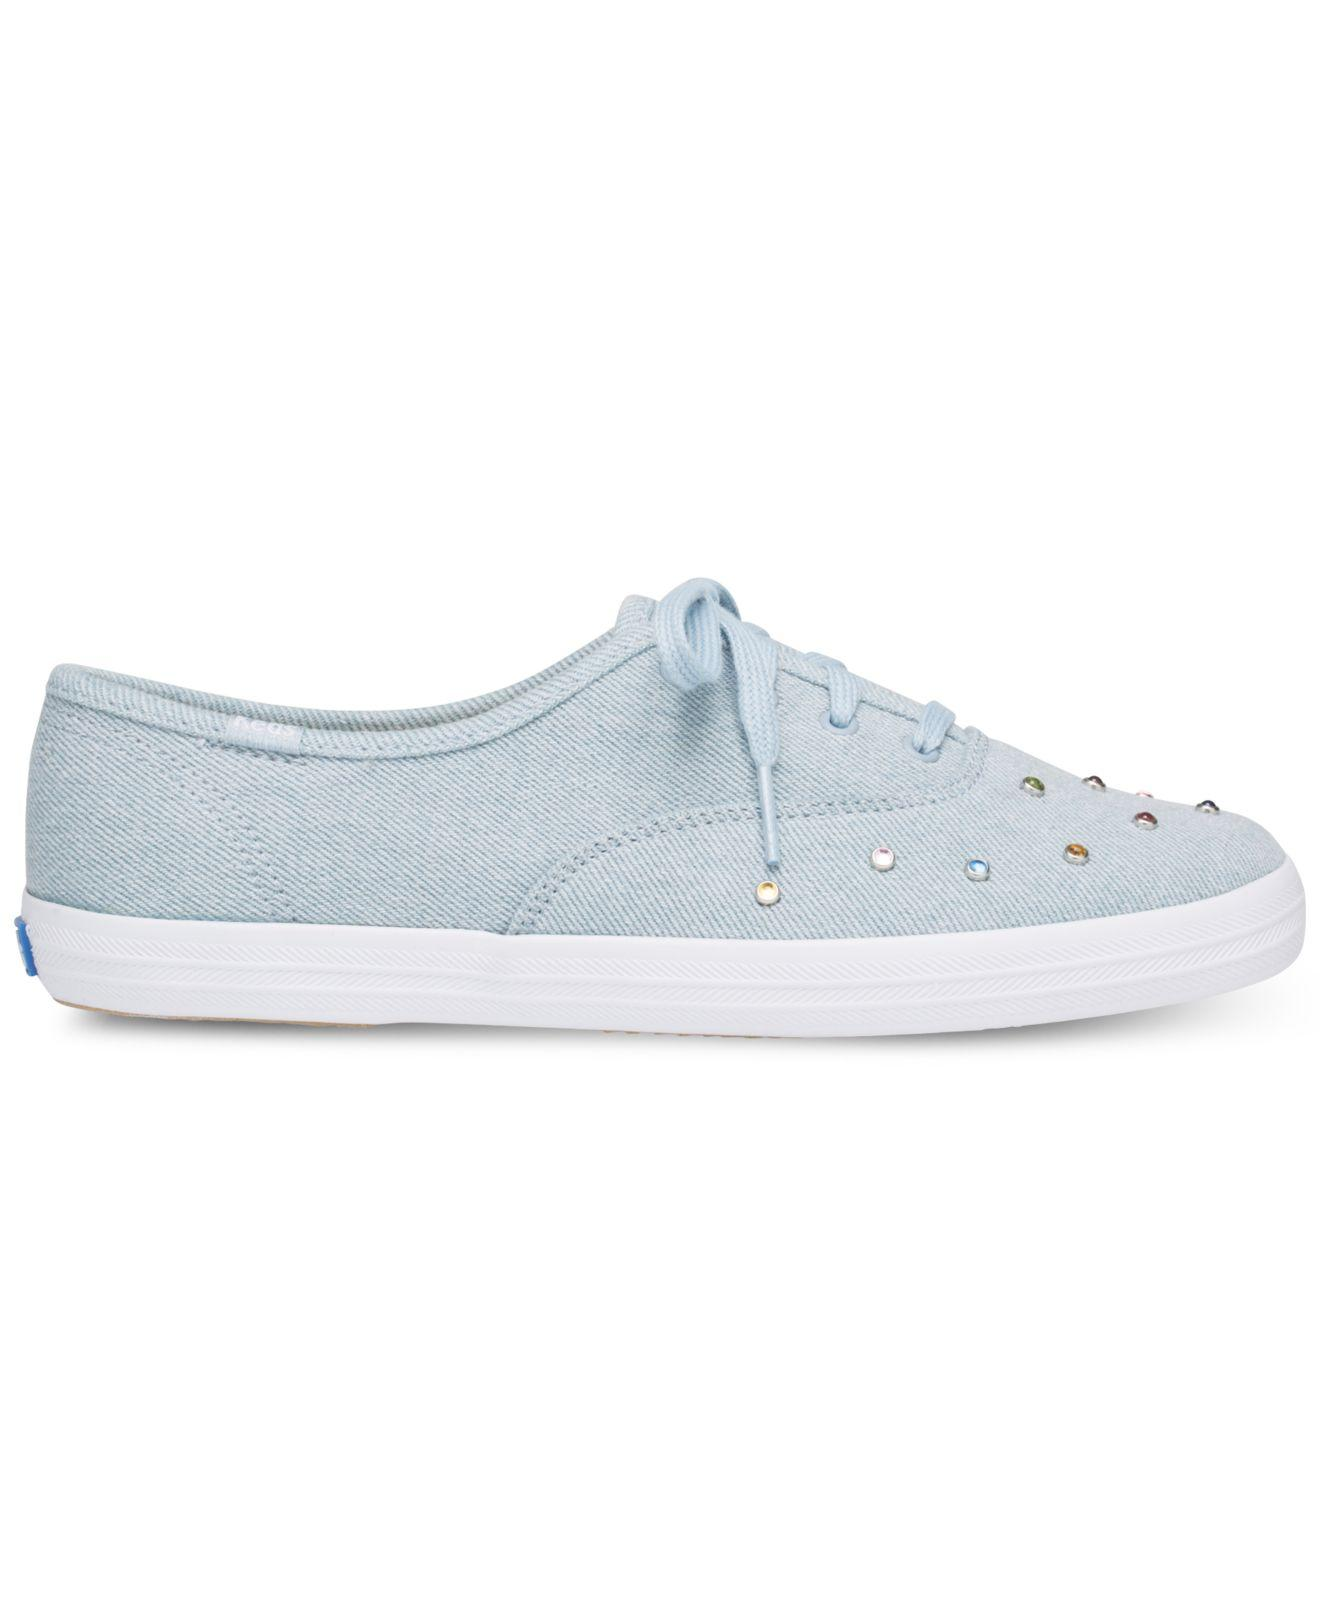 f07eb3ff0363a Lyst - Keds Champion Starlight Stud Sneakers in Blue